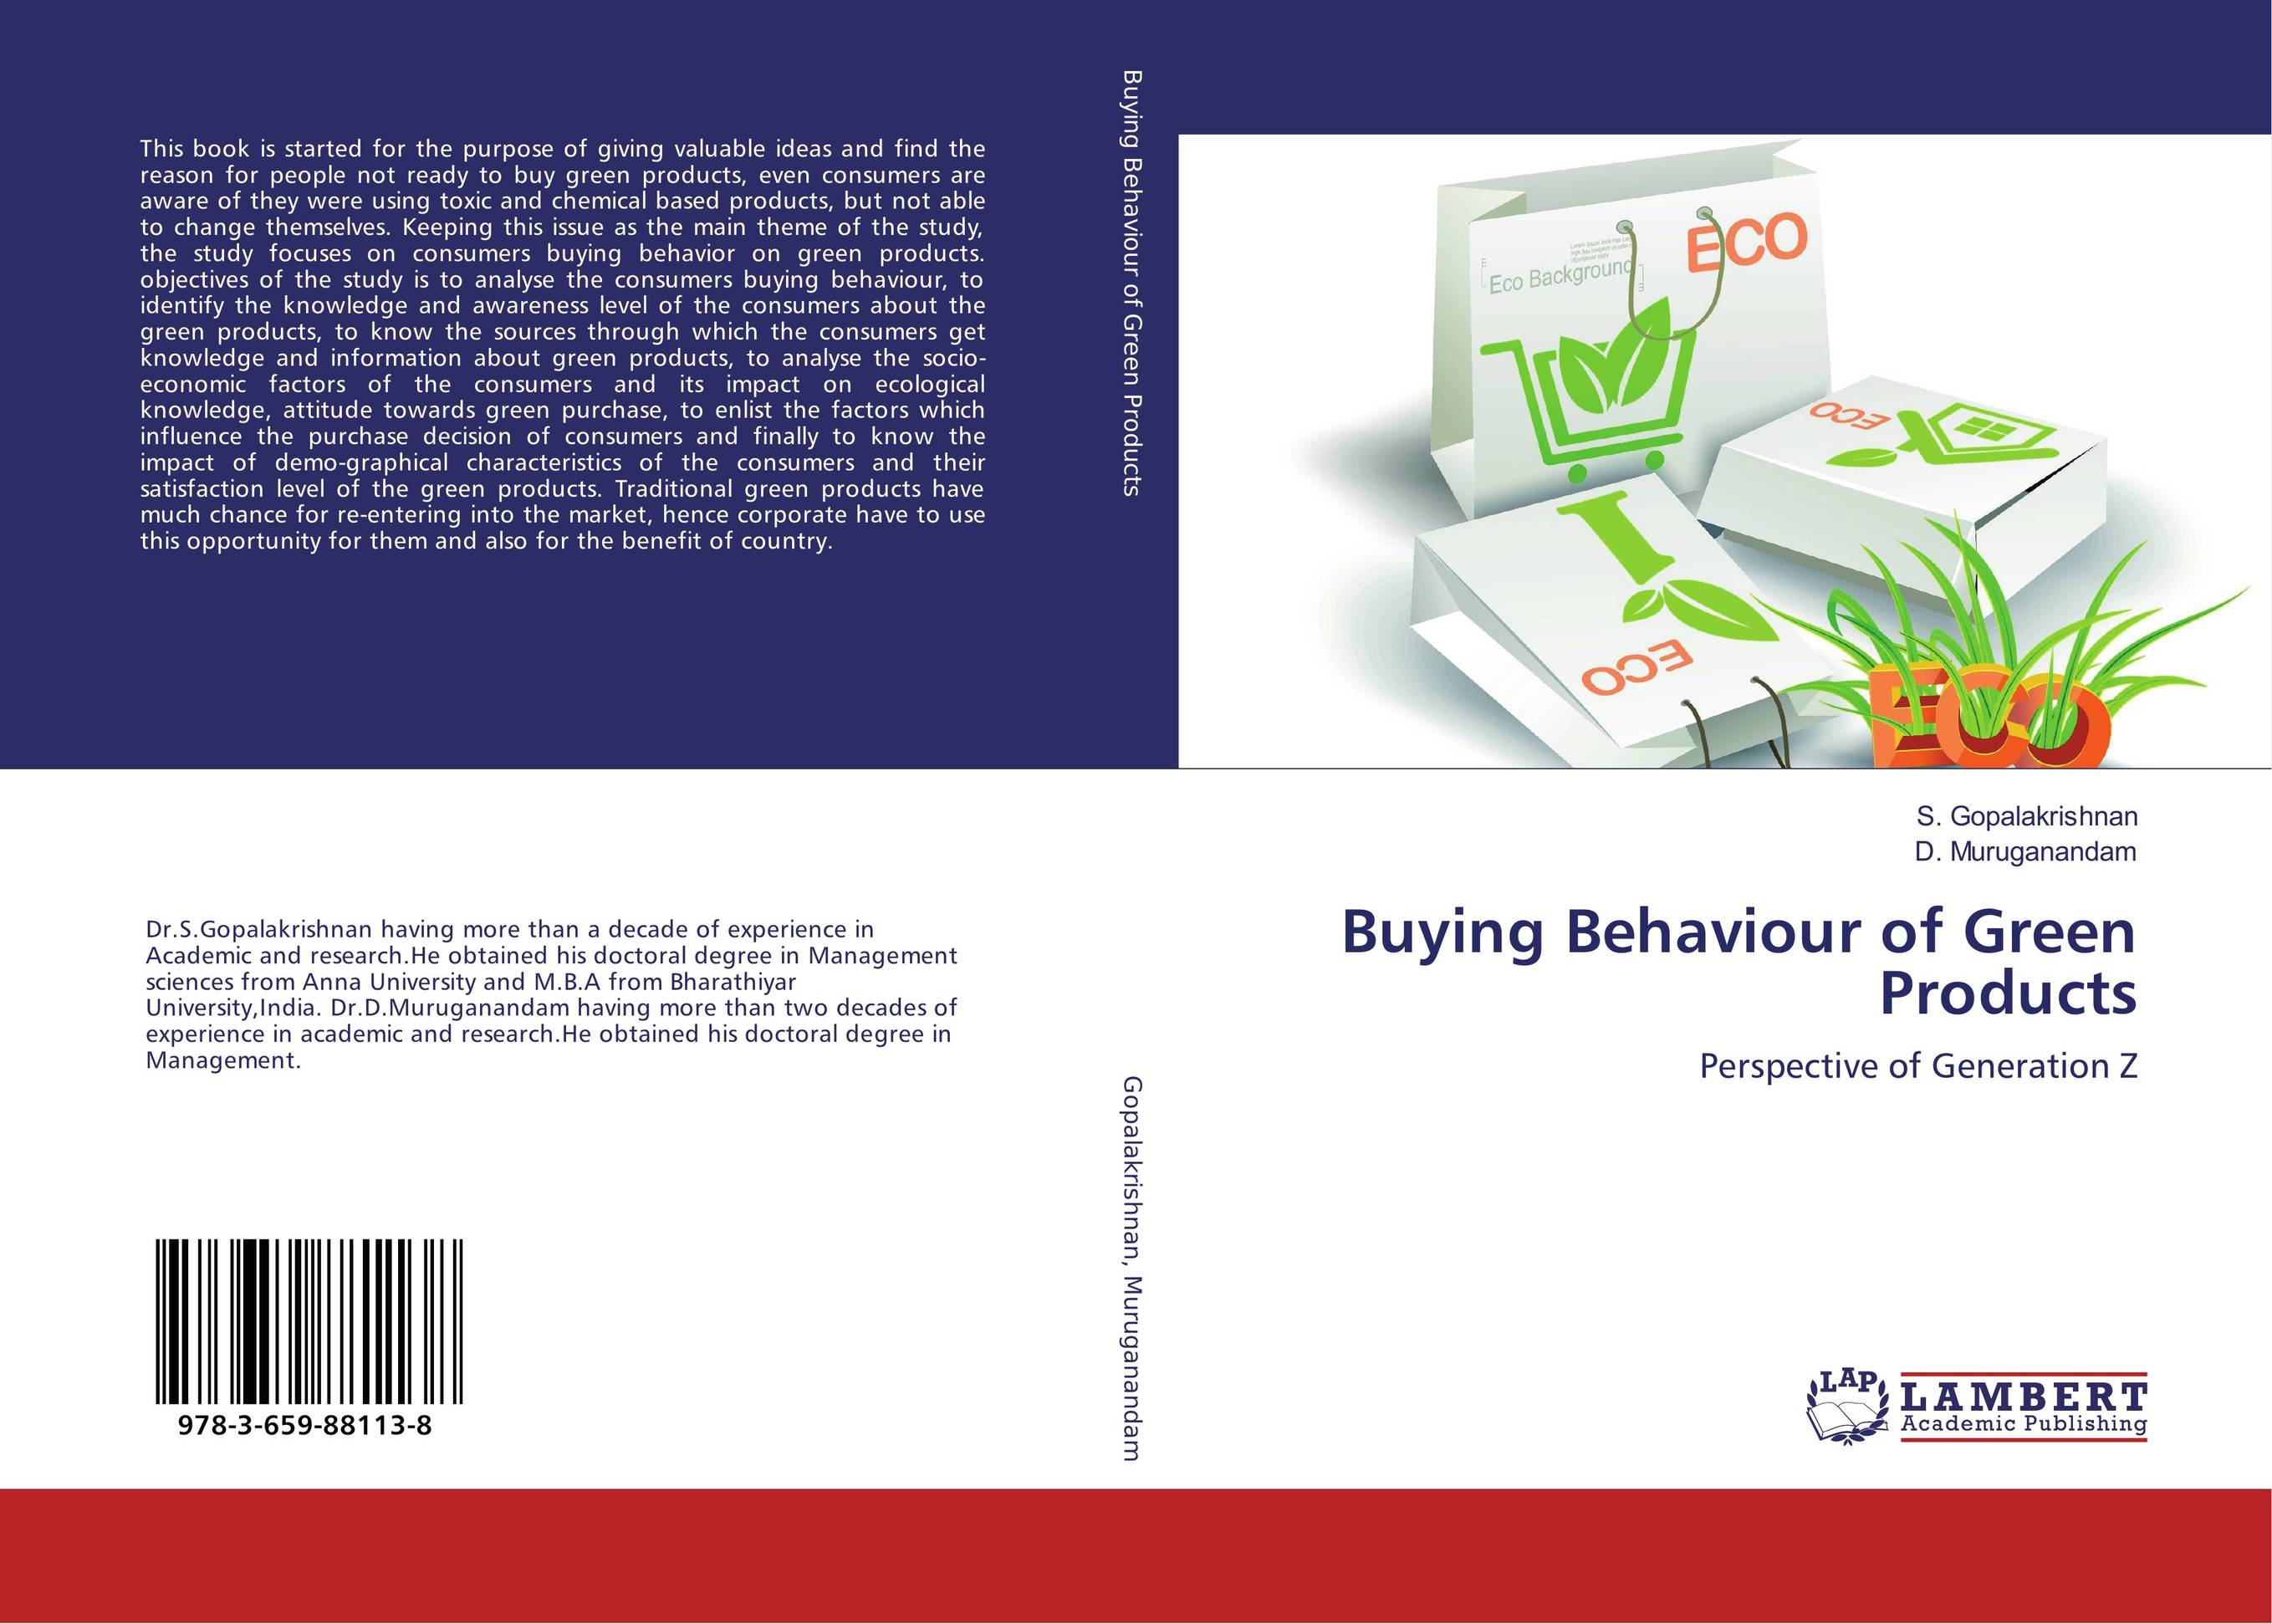 Buying Behaviour of Green Products